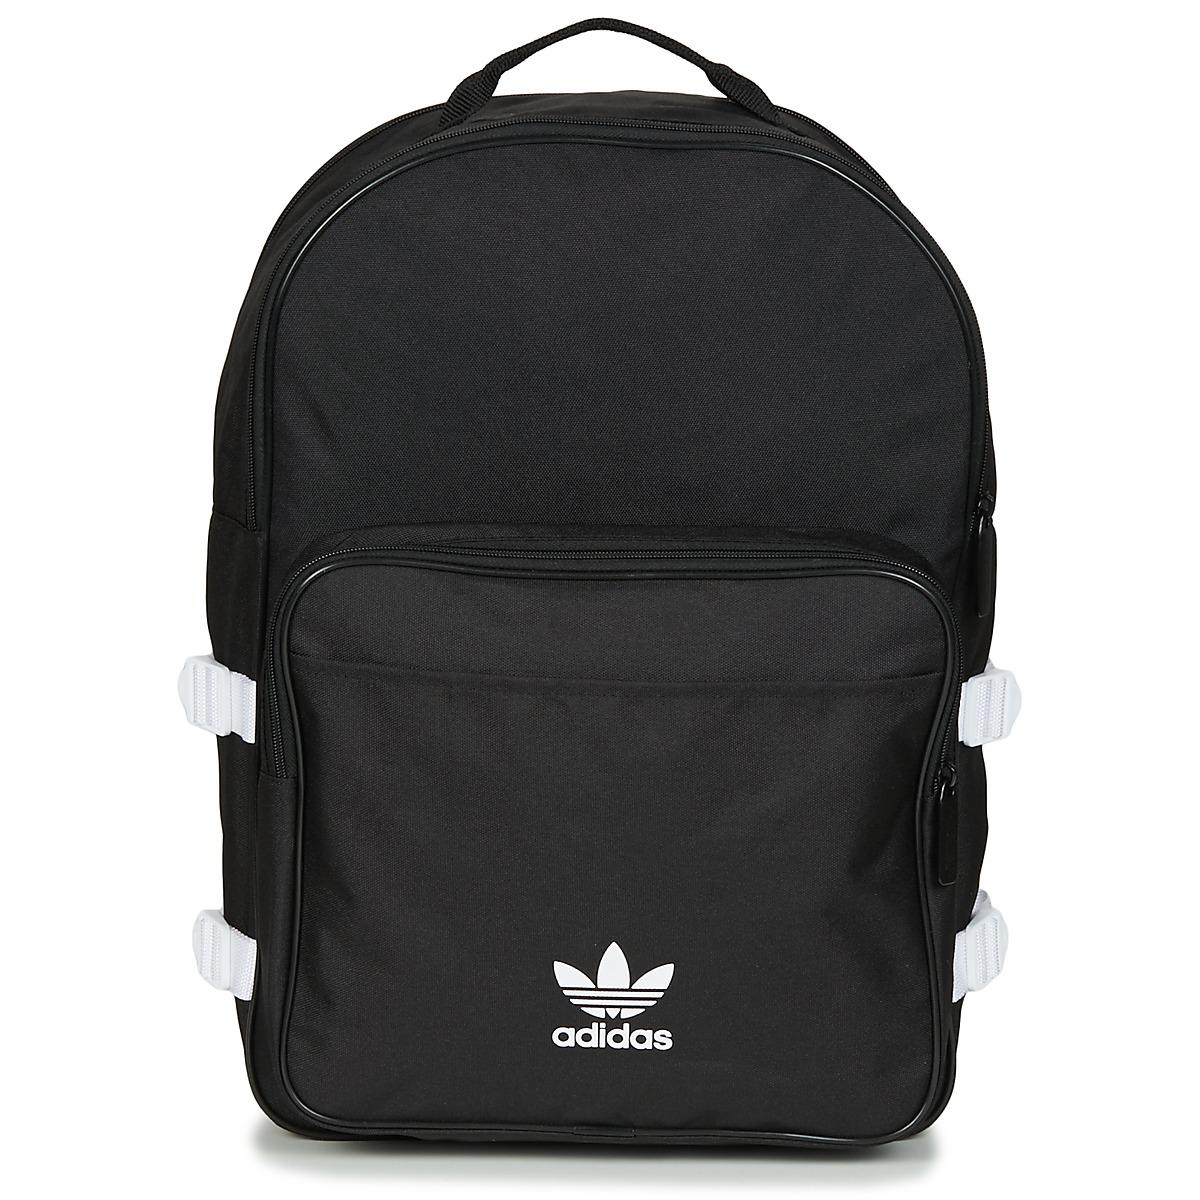 Adidas - Bp Essential Women s Backpack In Black for Men - Lyst. View  fullscreen aec8c9675999f